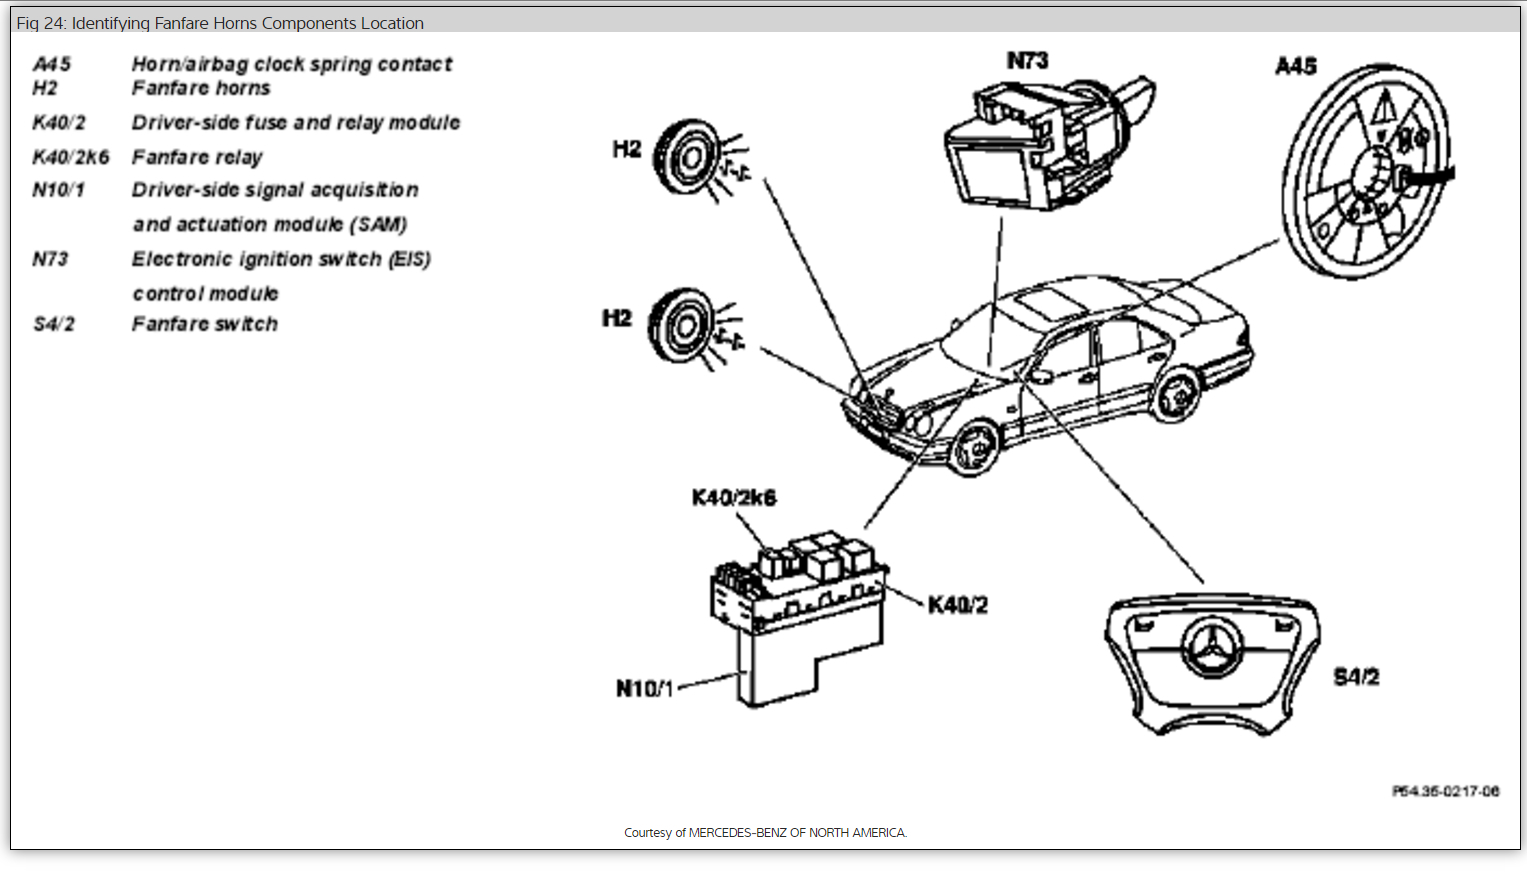 38 Ford Windstar Engine Diagram further Chrysler 300c Fuel Pump Wiring Diagram additionally 355754 Clean C Evaporator Rid Mold Midlew Where How Access C Evaporator Drain likewise Mercedes Viano Fuse Box Diagram together with Wiring Diagram For 2004 Chrysler Cirrus. on 2002 mercedes s500 fuse box diagram